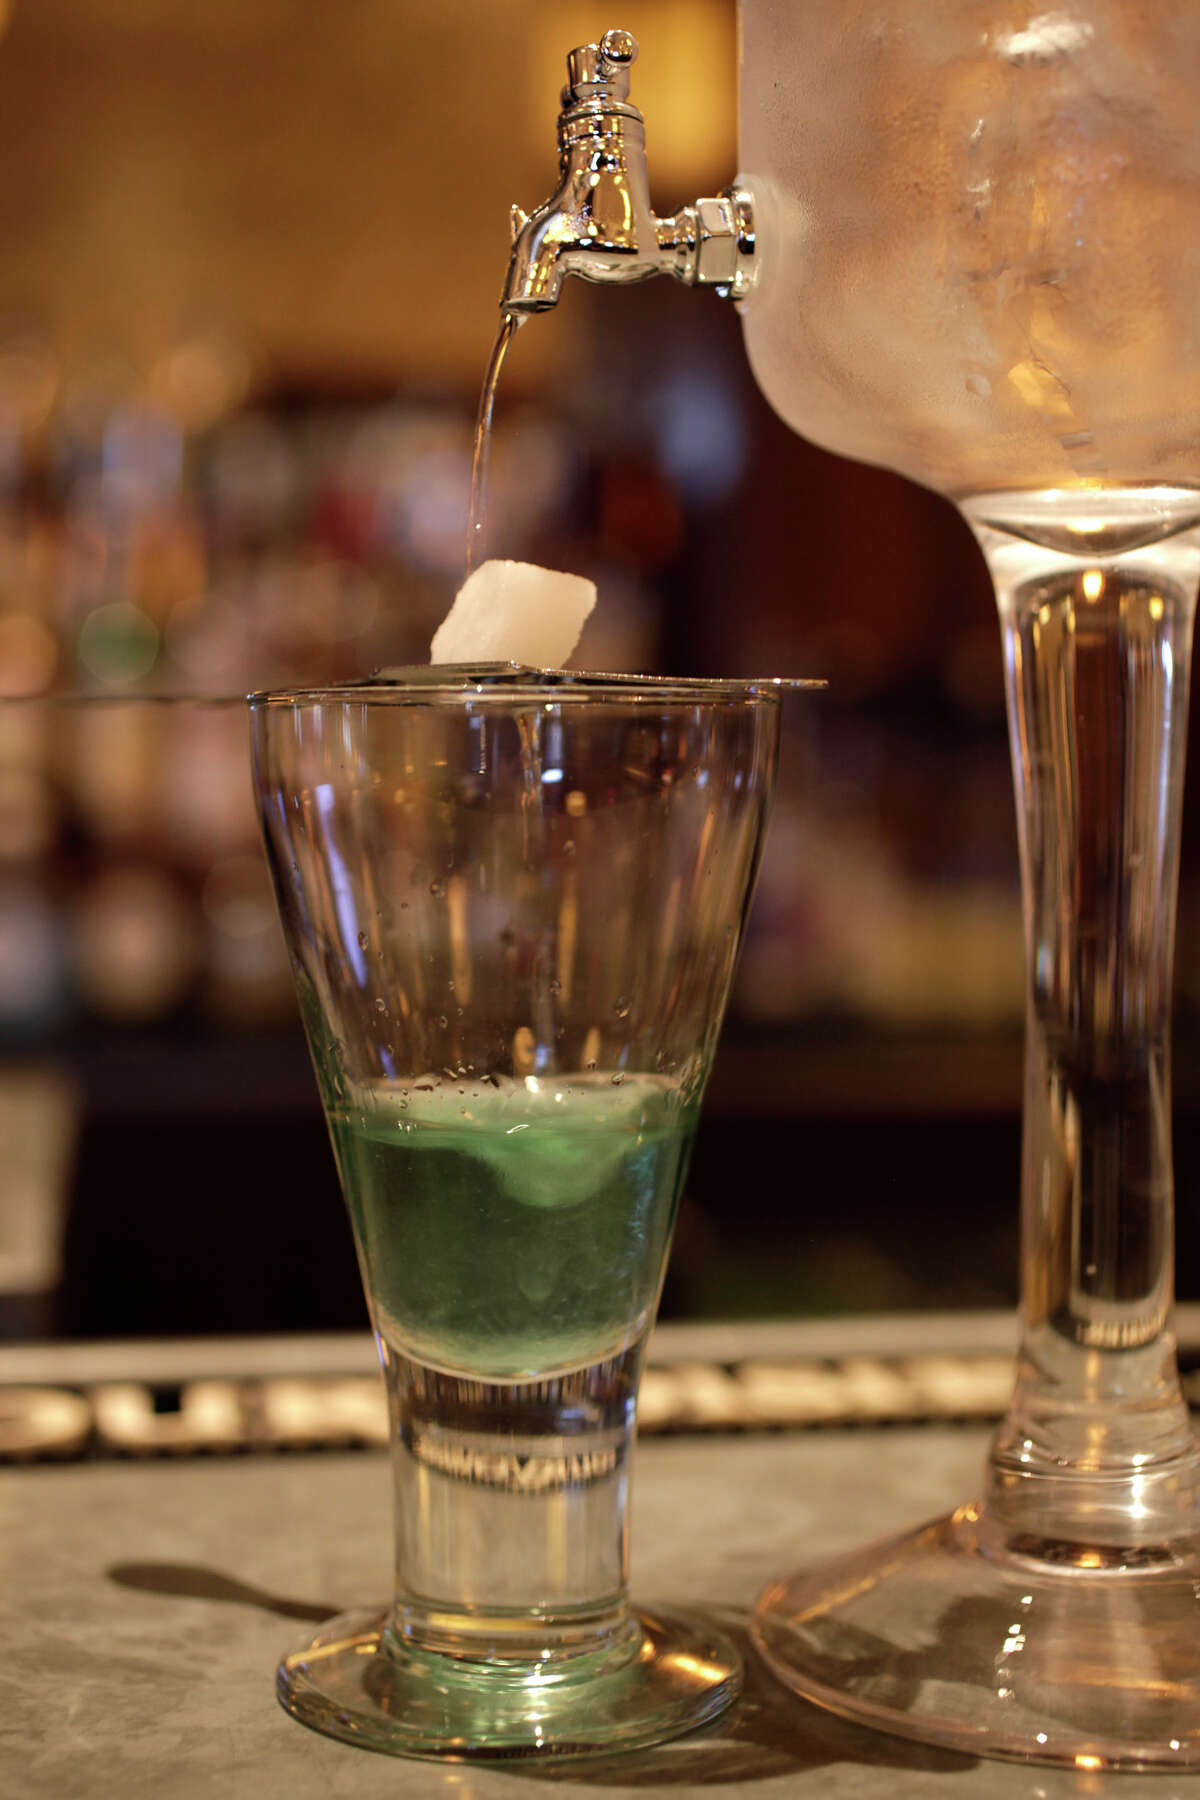 No need to fear absinthe now.